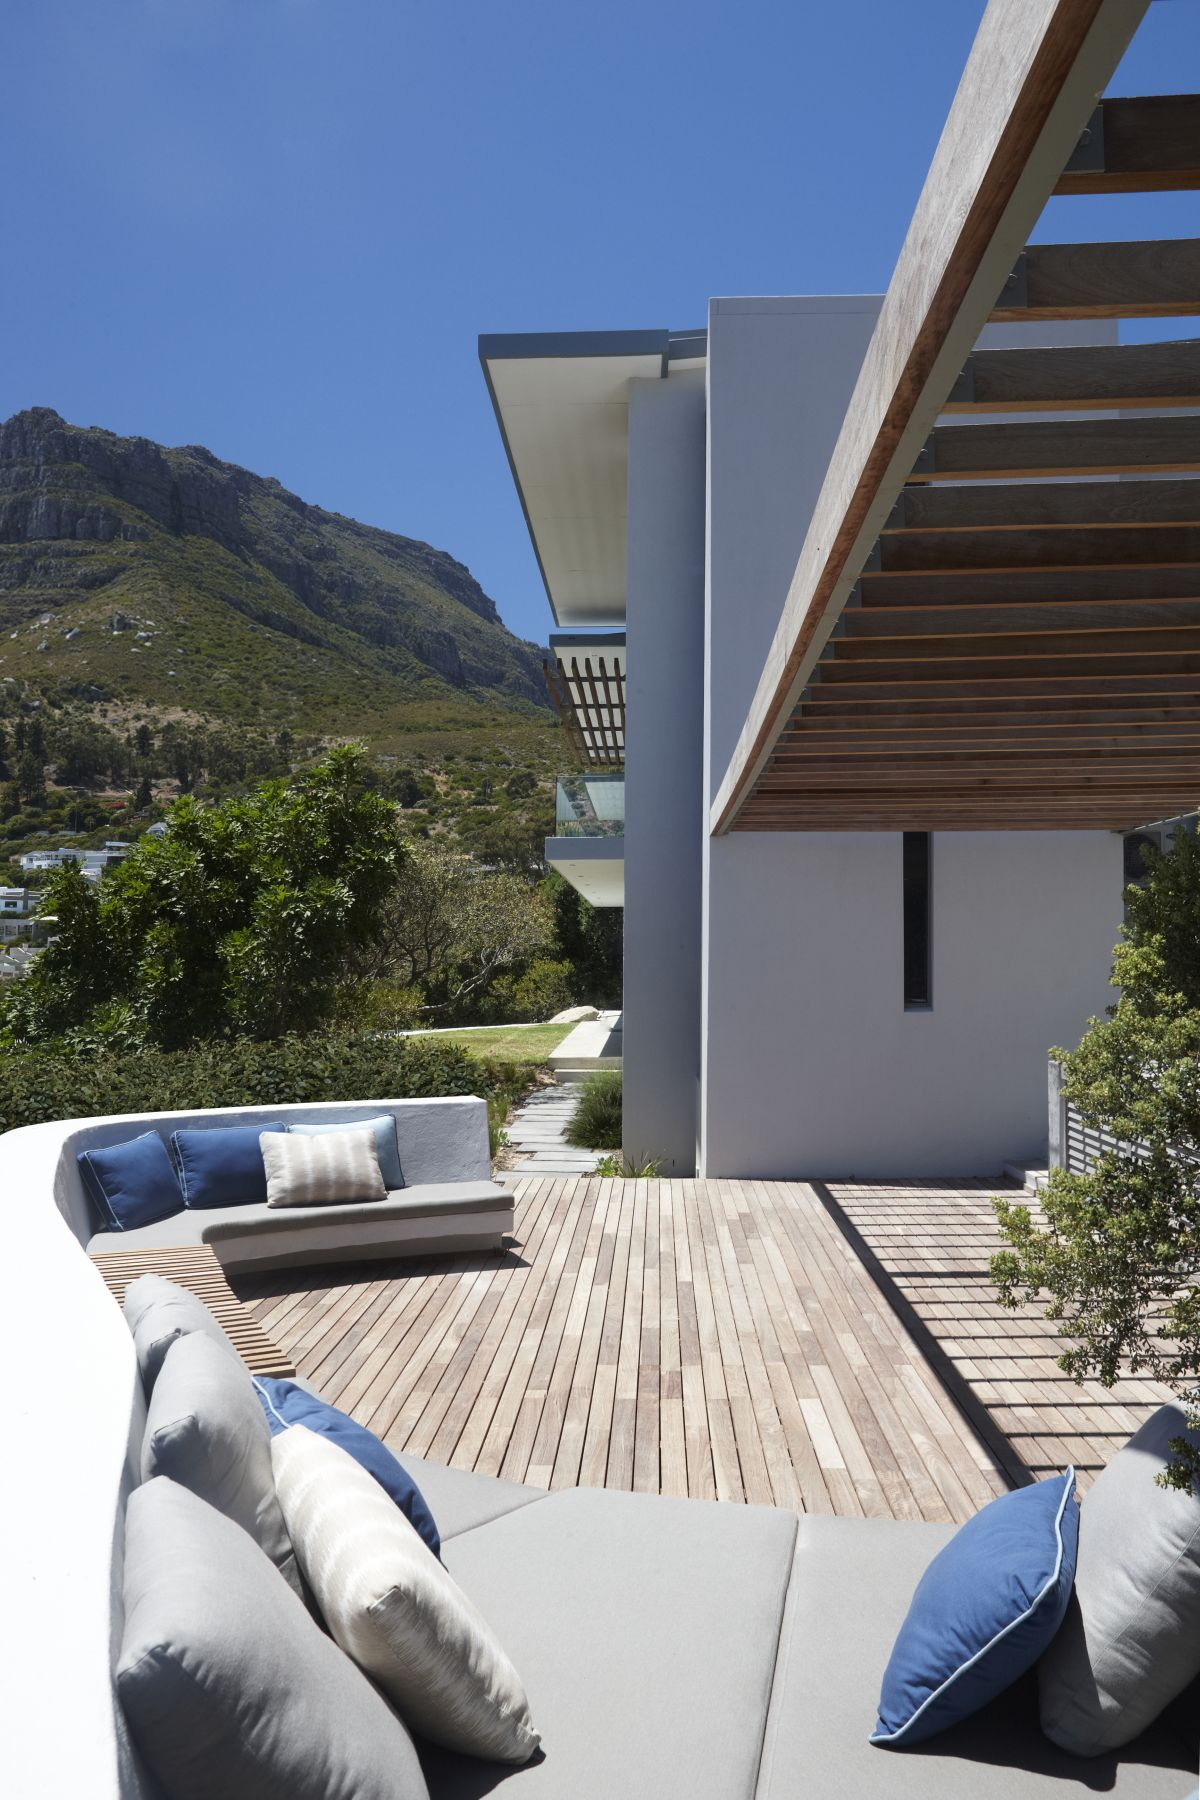 Large balconies and terraces frame the front and the back of the house, taking full advantage of the spectacular views